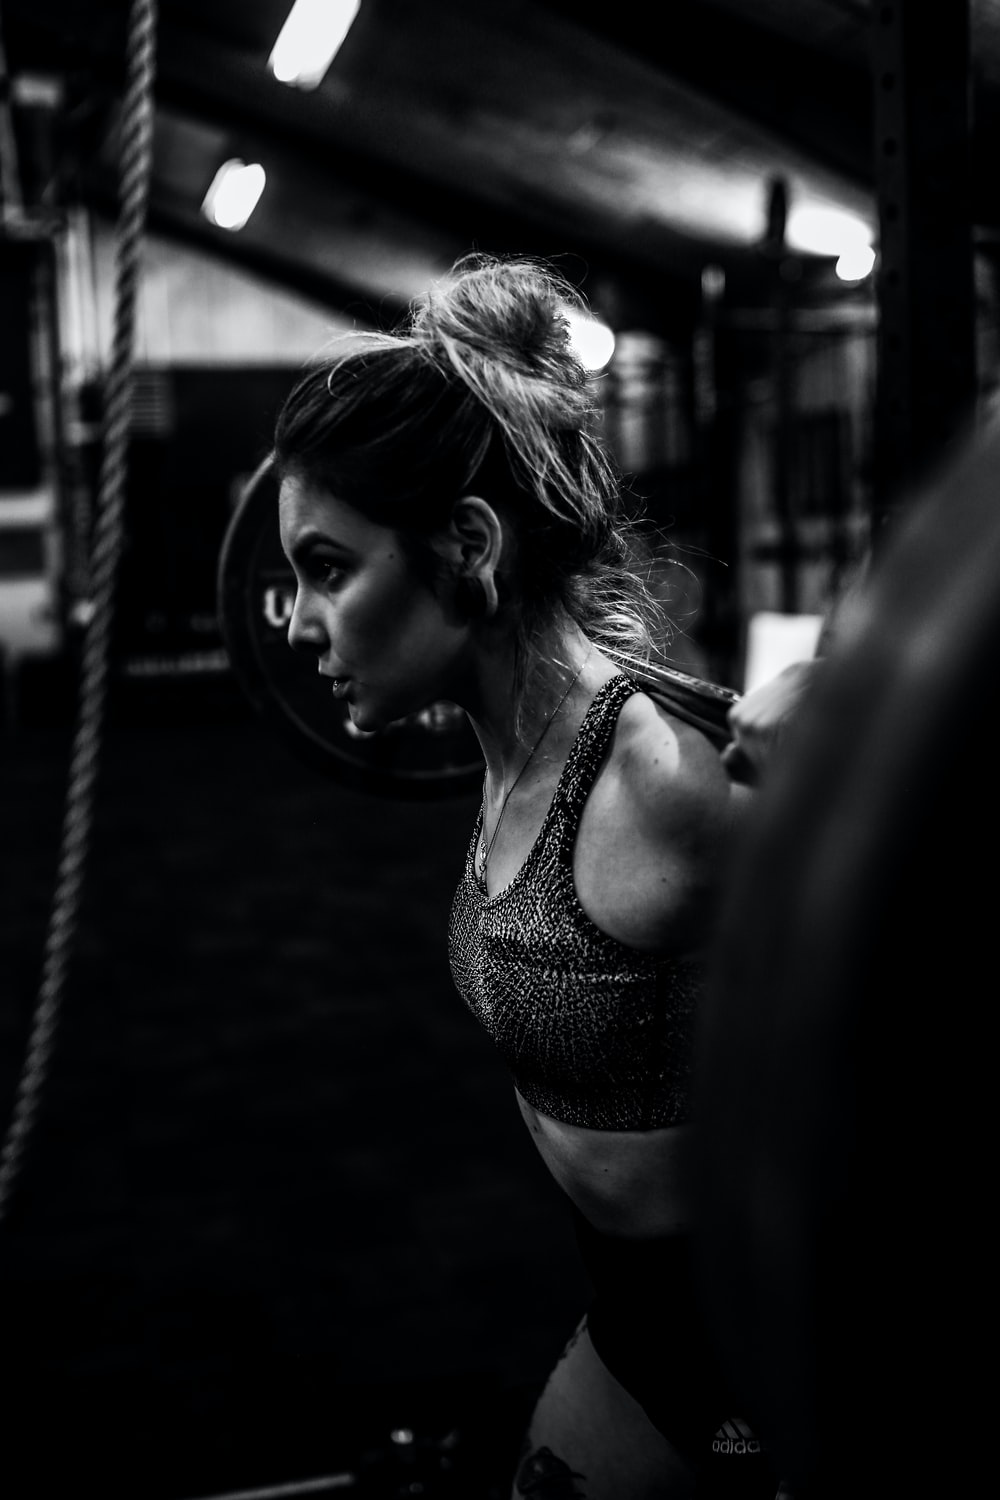 greyscale photo of woman in bralette inside room photo – Free Fitness Image  on Unsplash